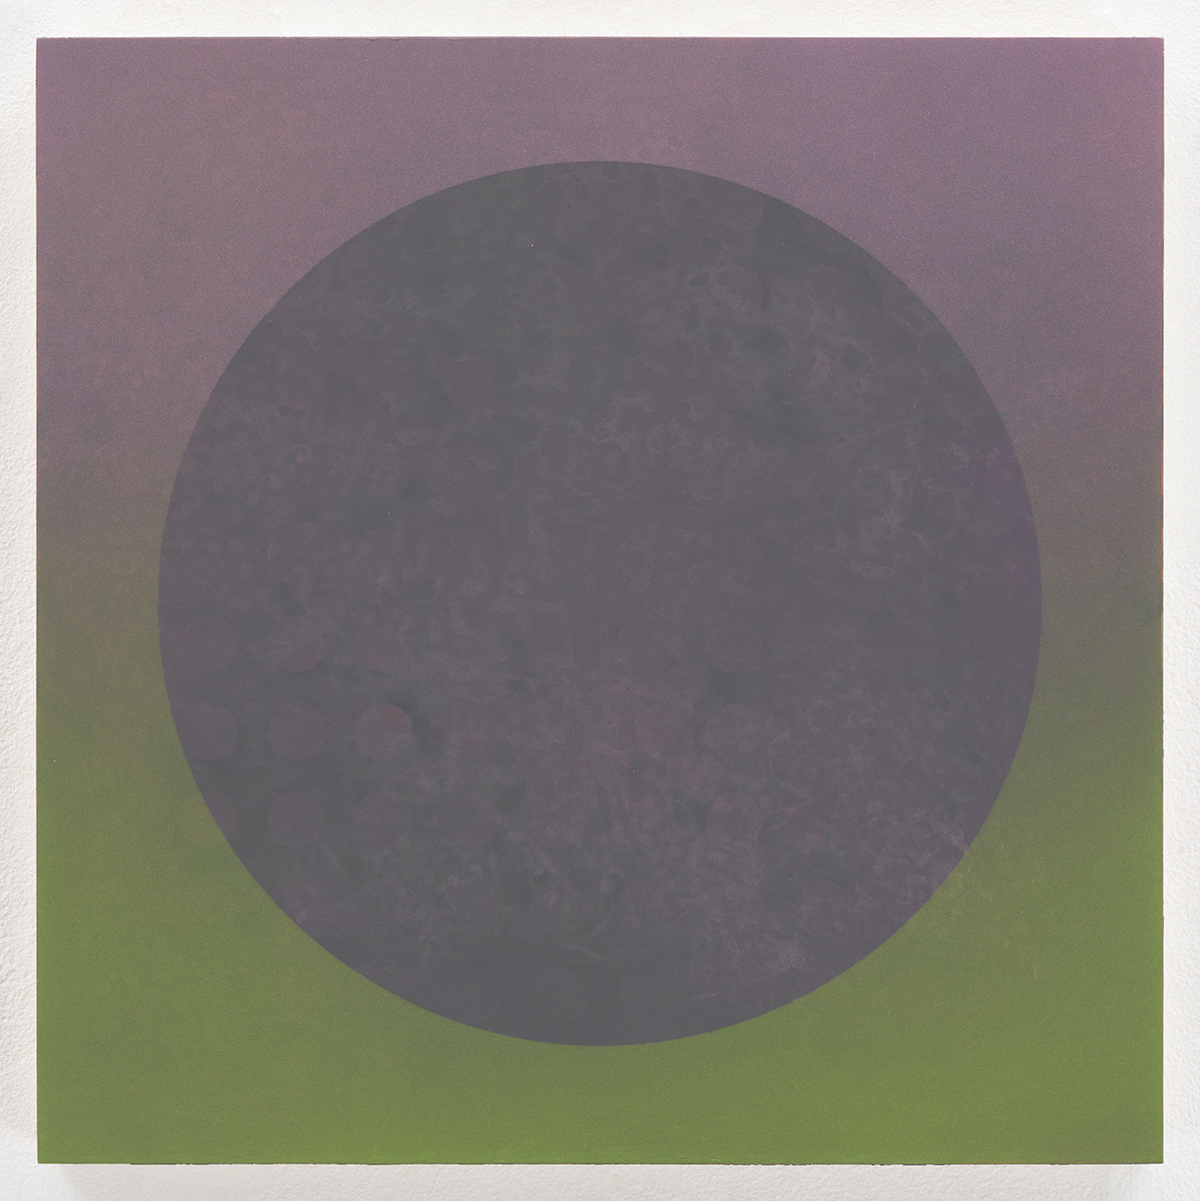 Peephole , 2013-4  Acrylic on panel  12 x 12 inches